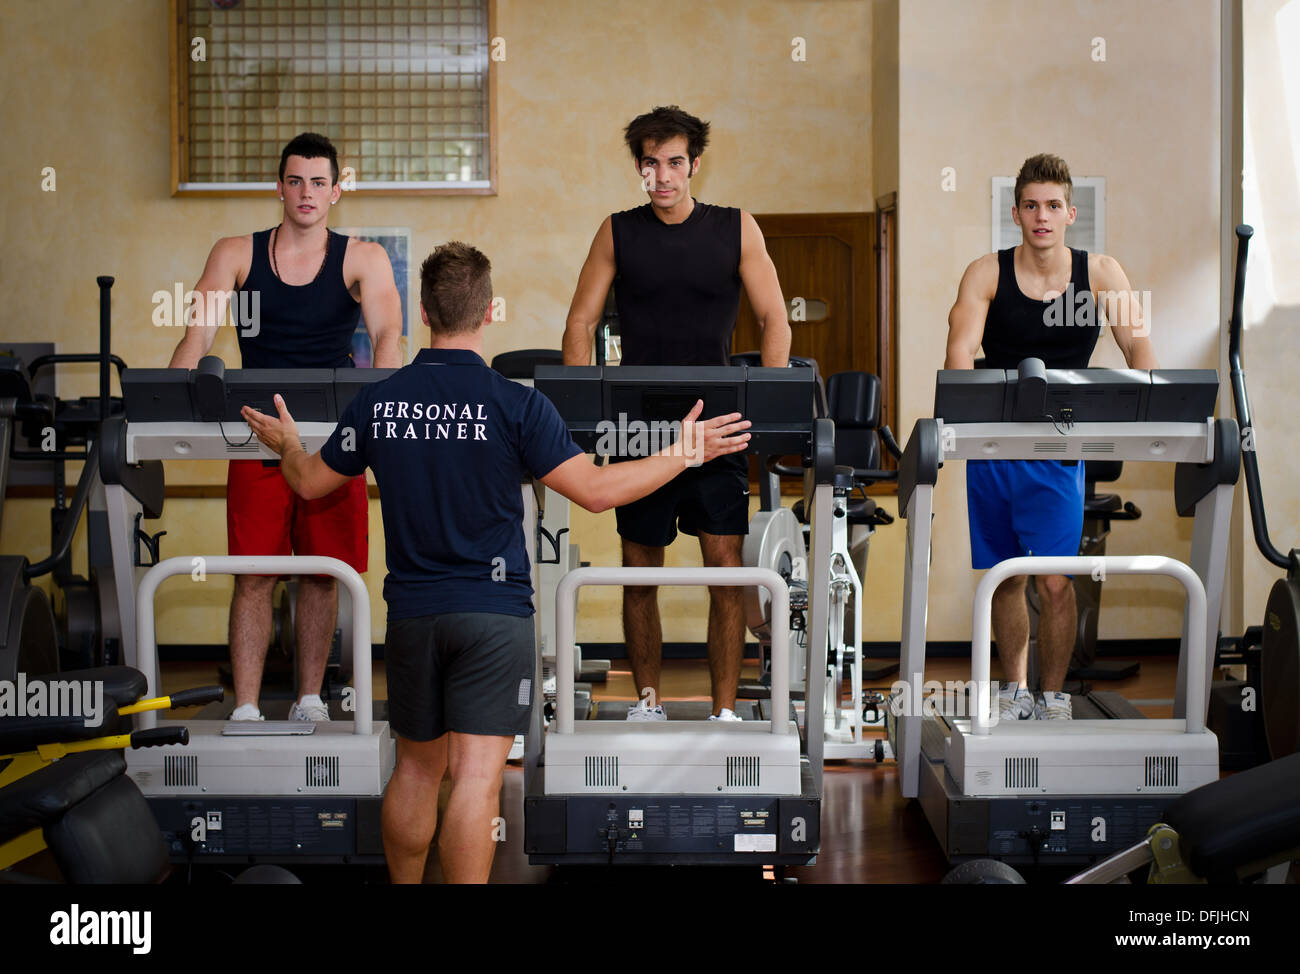 Three young men exercising on treadmills with personal trainer in a gym. - Stock Image